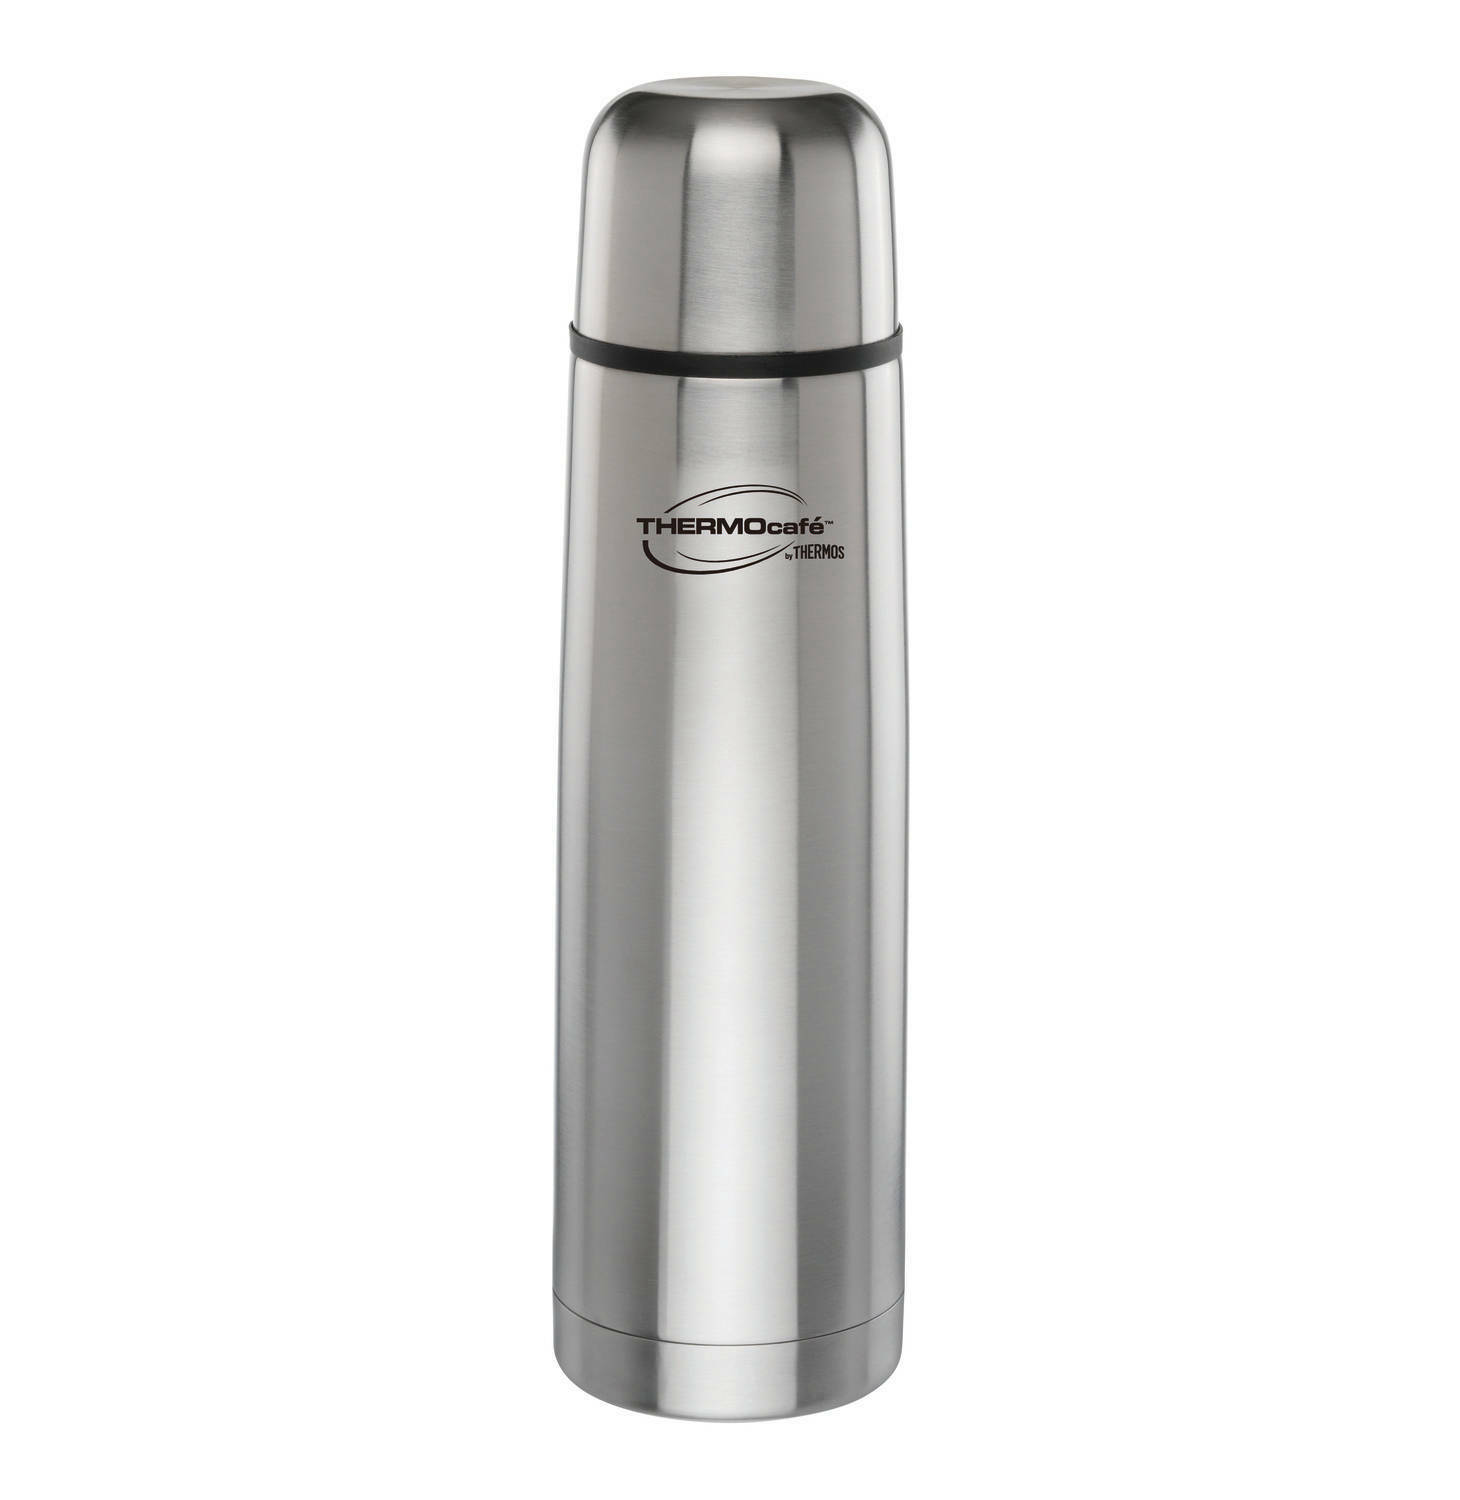 thermos thermocafe vacuum insulated 24oz stainless steel compact beverage bottle. Black Bedroom Furniture Sets. Home Design Ideas